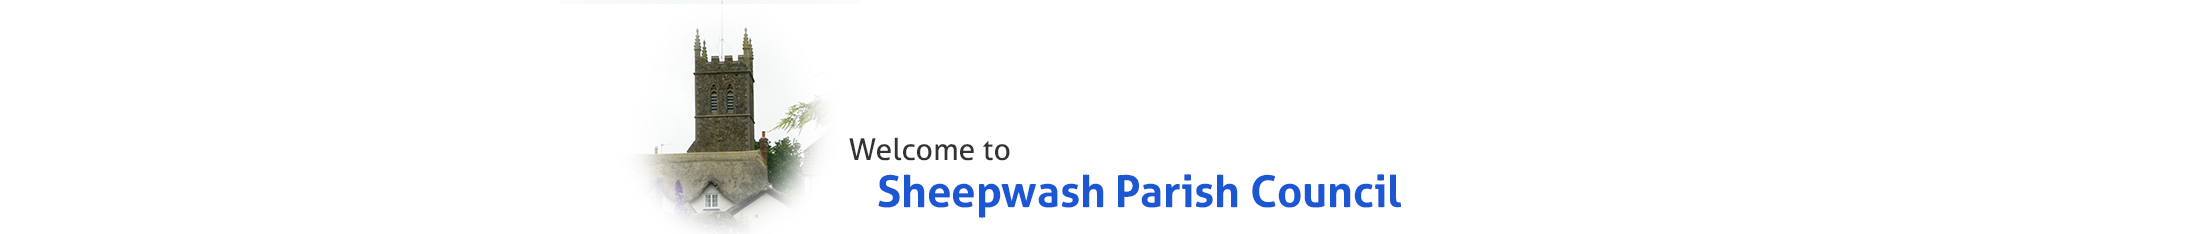 Header Image for Sheepwash Parish Council